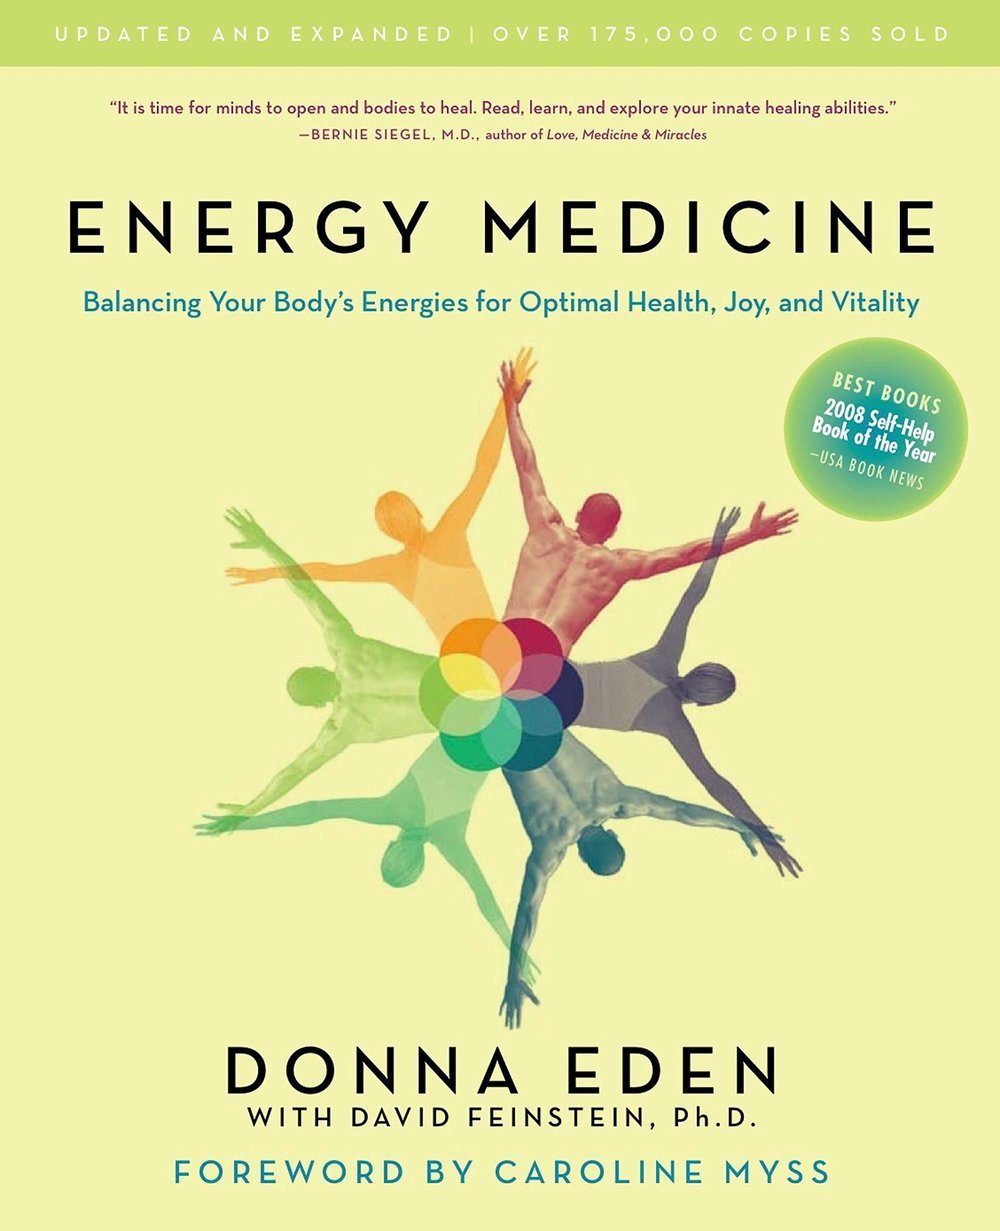 Energy Medicine Balancing Your Body's Energies for Optimal Health, Joy, and Vitality.jpg